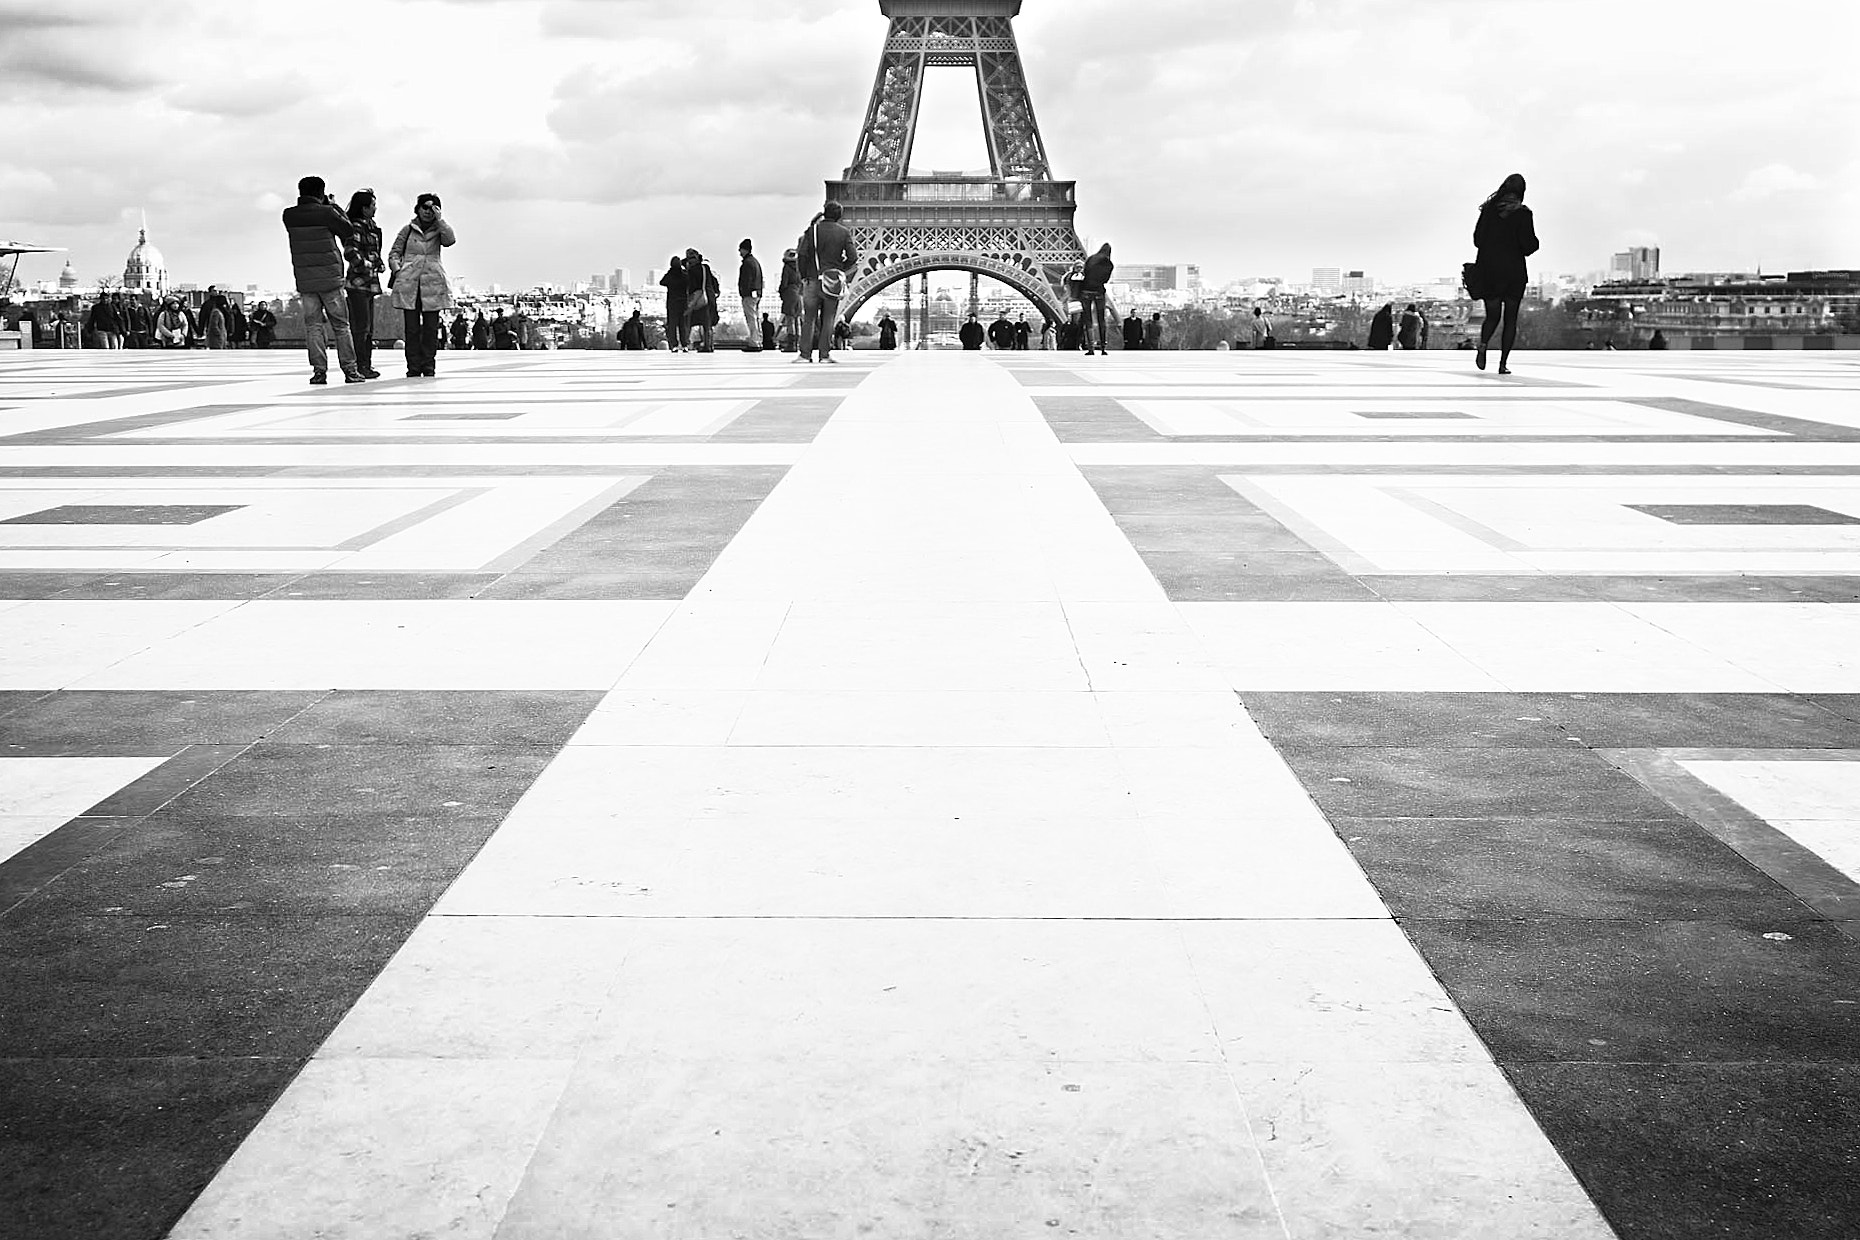 Photograph Perspective et au delà. by Laurence Penne on 500px